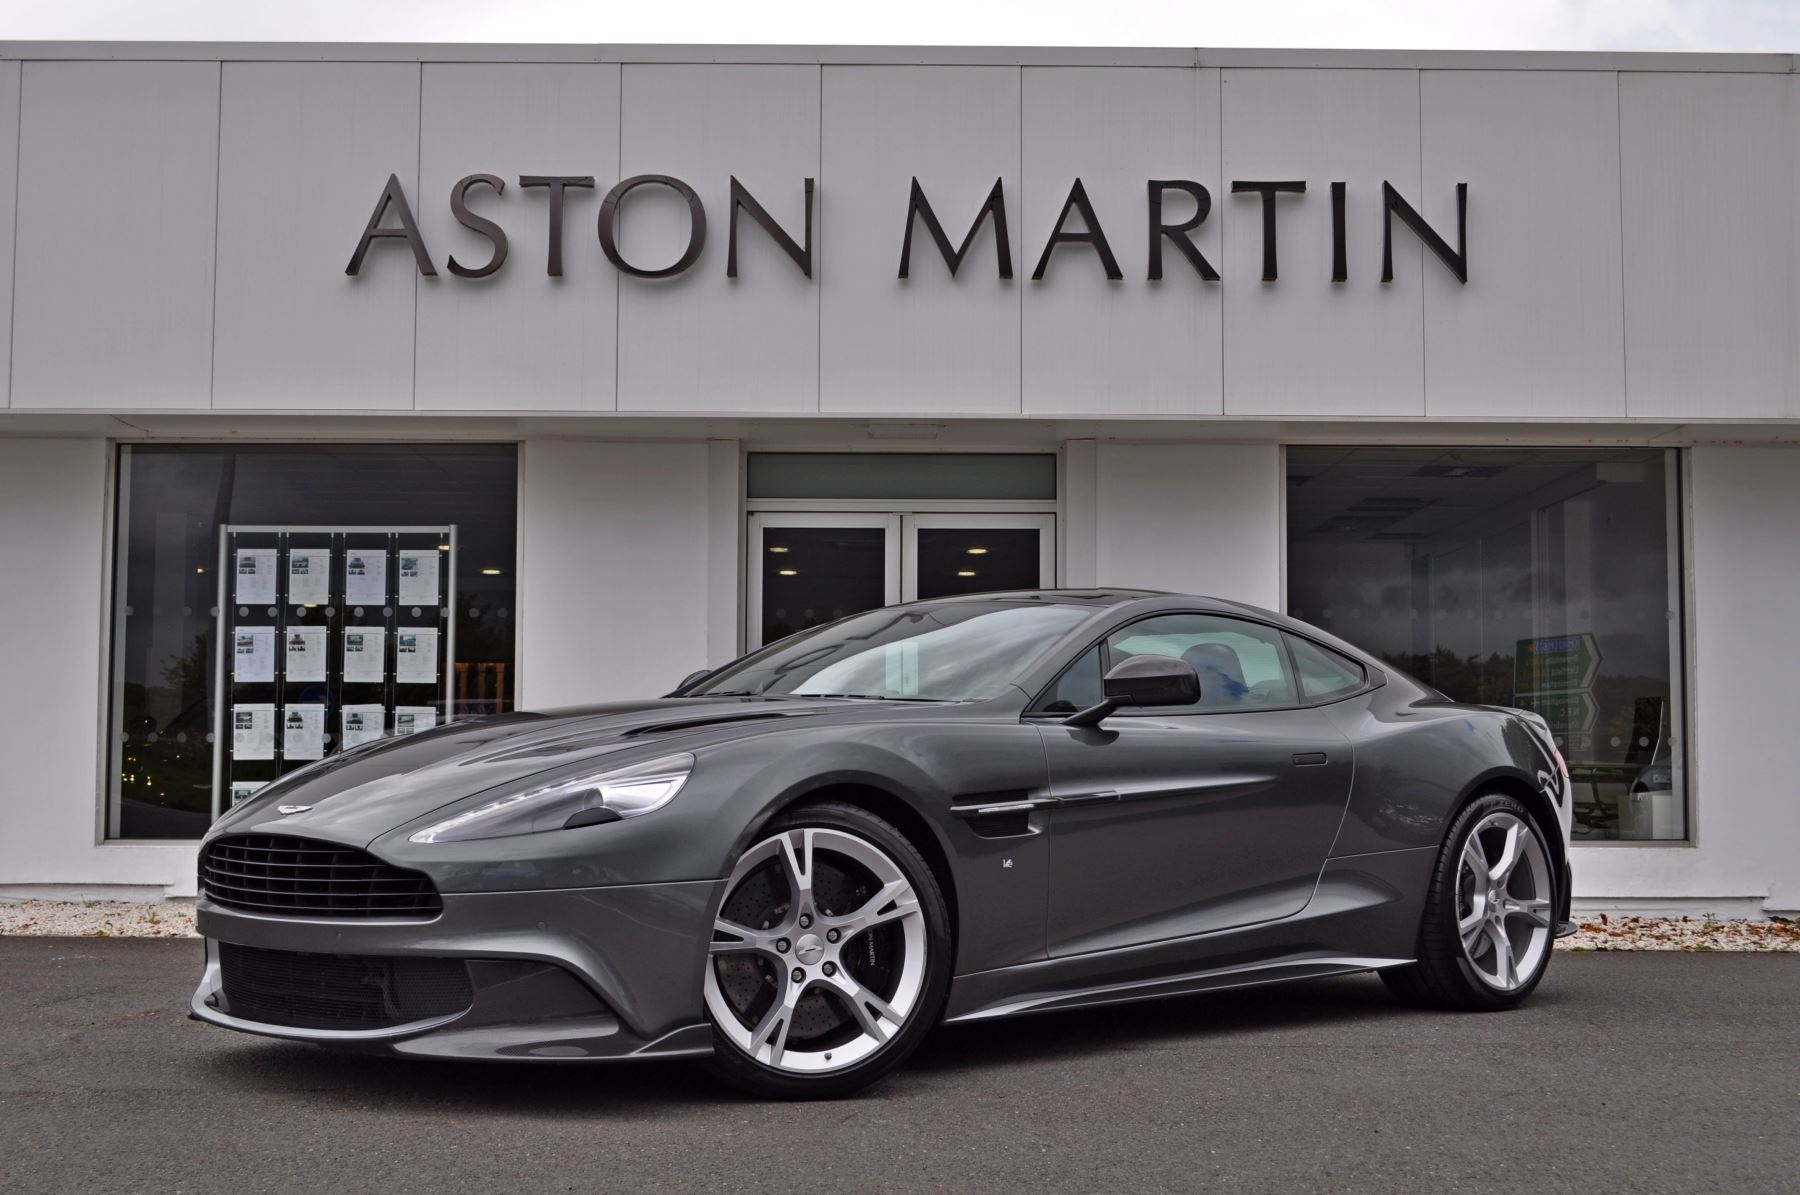 Aston Martin Vanquish S V12 [595] S 2+2 2dr Touchtronic 5.9 Automatic Coupe (2018)